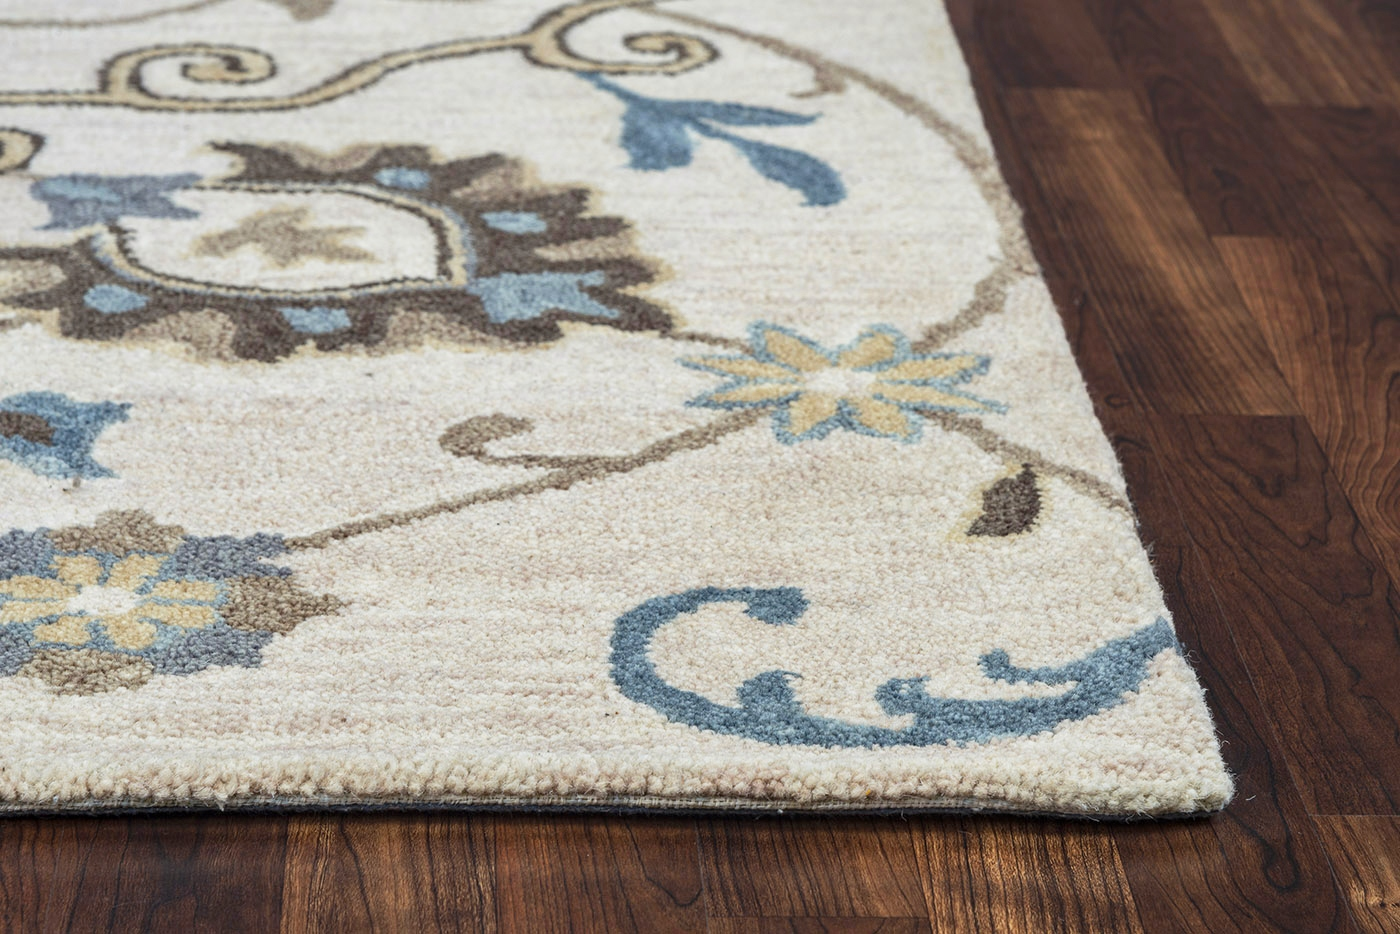 Make your floors fancy with chic area rugs from Kmart. Find ridiculously awesome accent rugs to add a splash of style to any room.